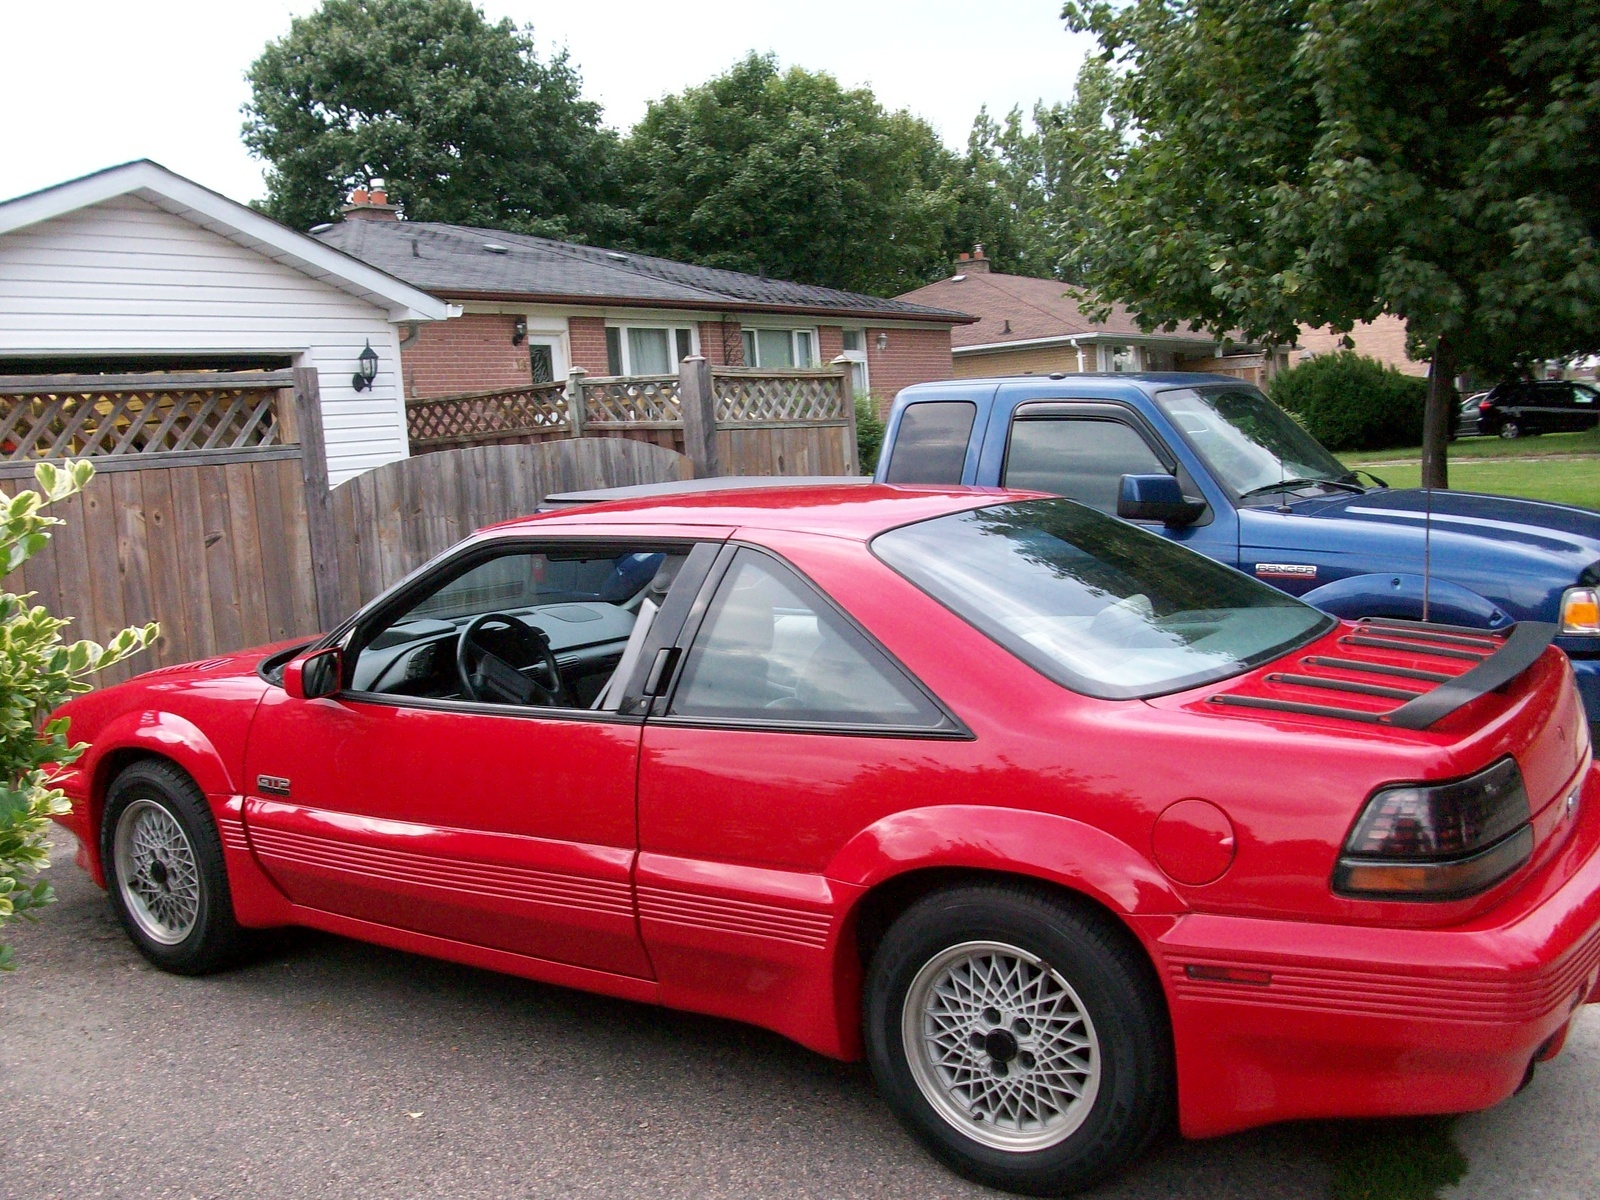 pontiac grand prix questions stalls at low speeds cargurus pontiac grand prix questions stalls